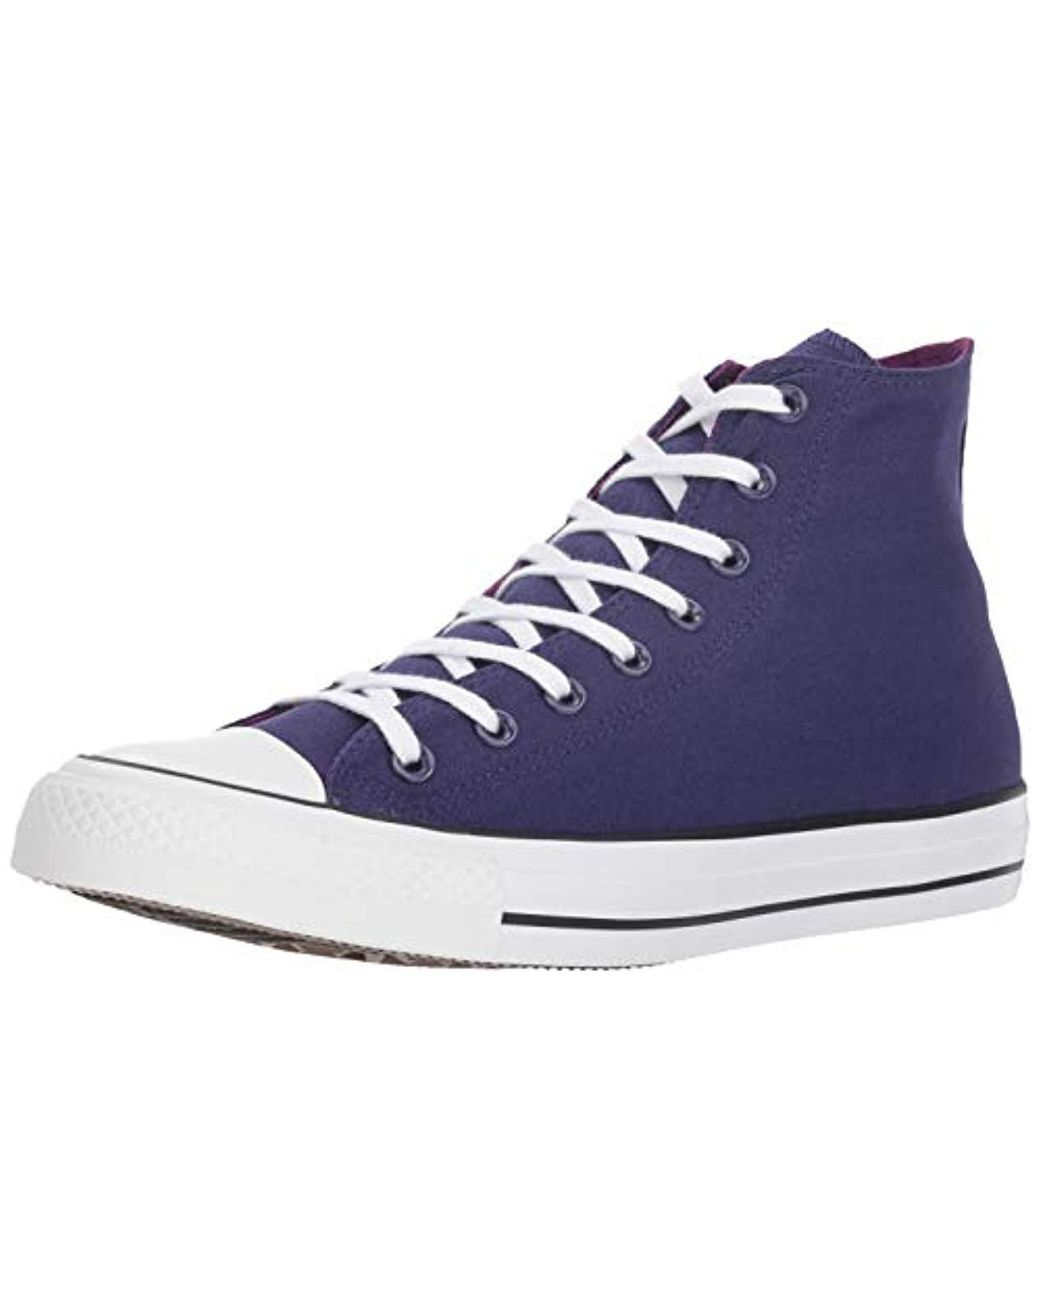 0c73a7fc39e1 Lyst - Converse Unisex Chuck Taylor As Specialty Hi Lace-up in Blue ...